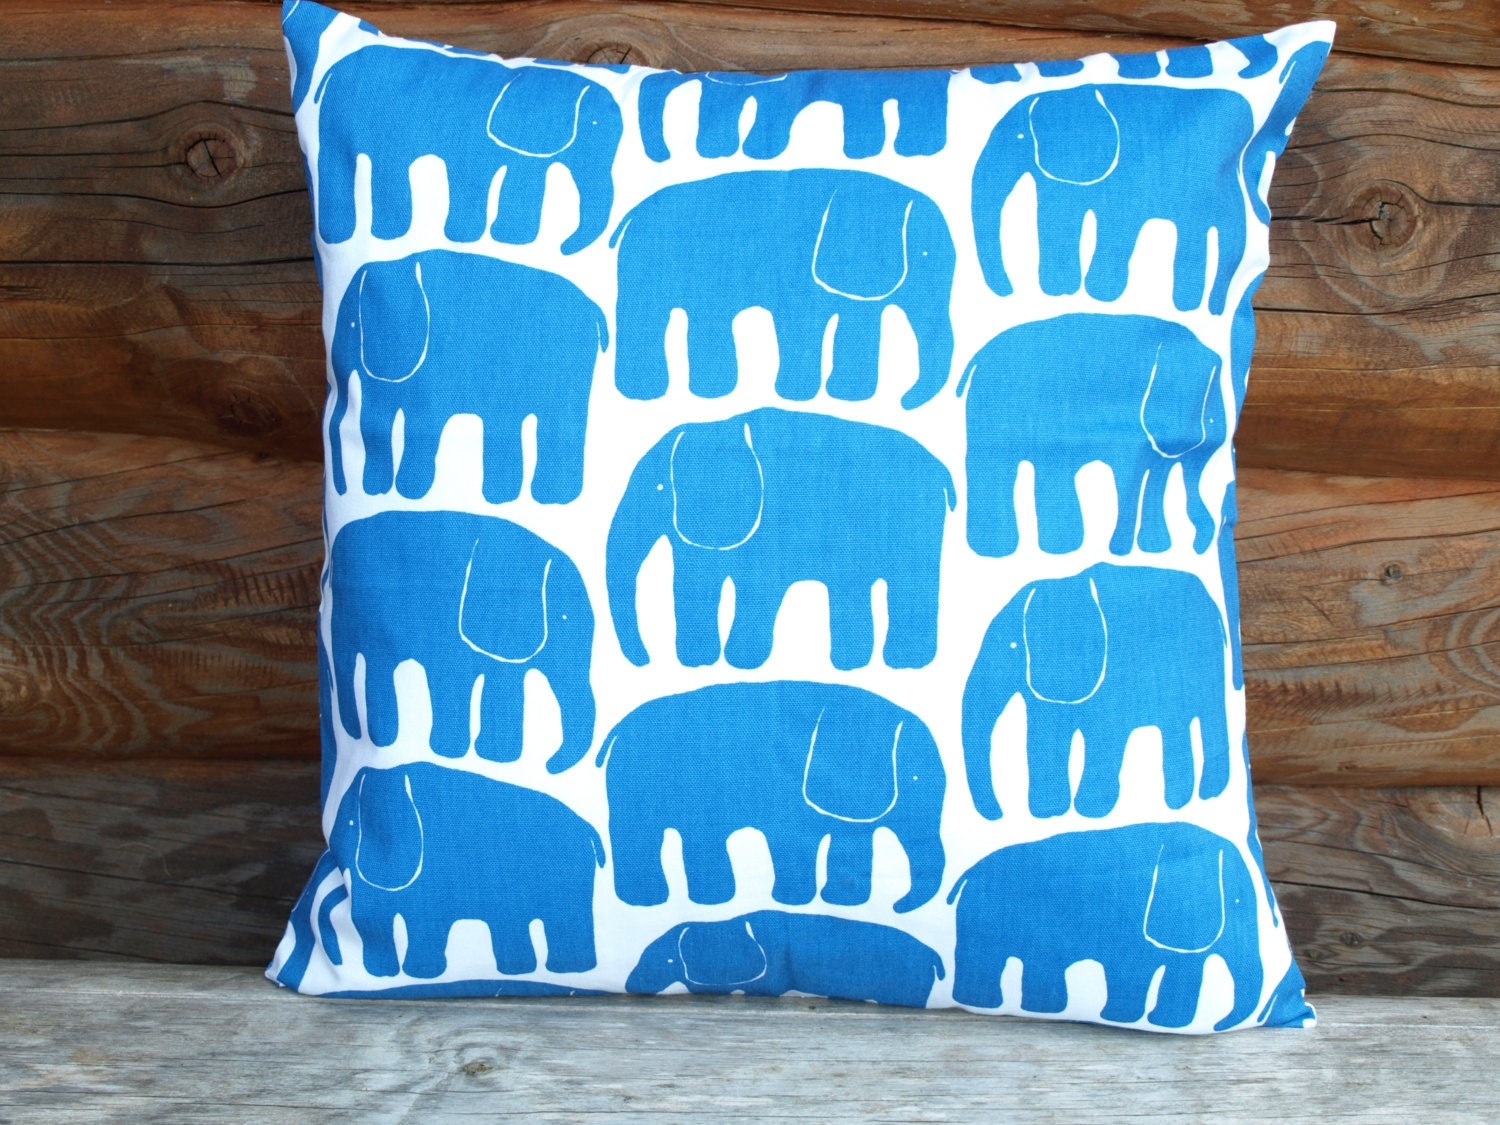 Decorative Pillow cover white bright blue Elephants Decorative Cotton pillow Scandinavian Design Throw pillows Floor Cushions Accent Pillows - Dreamzzzzz